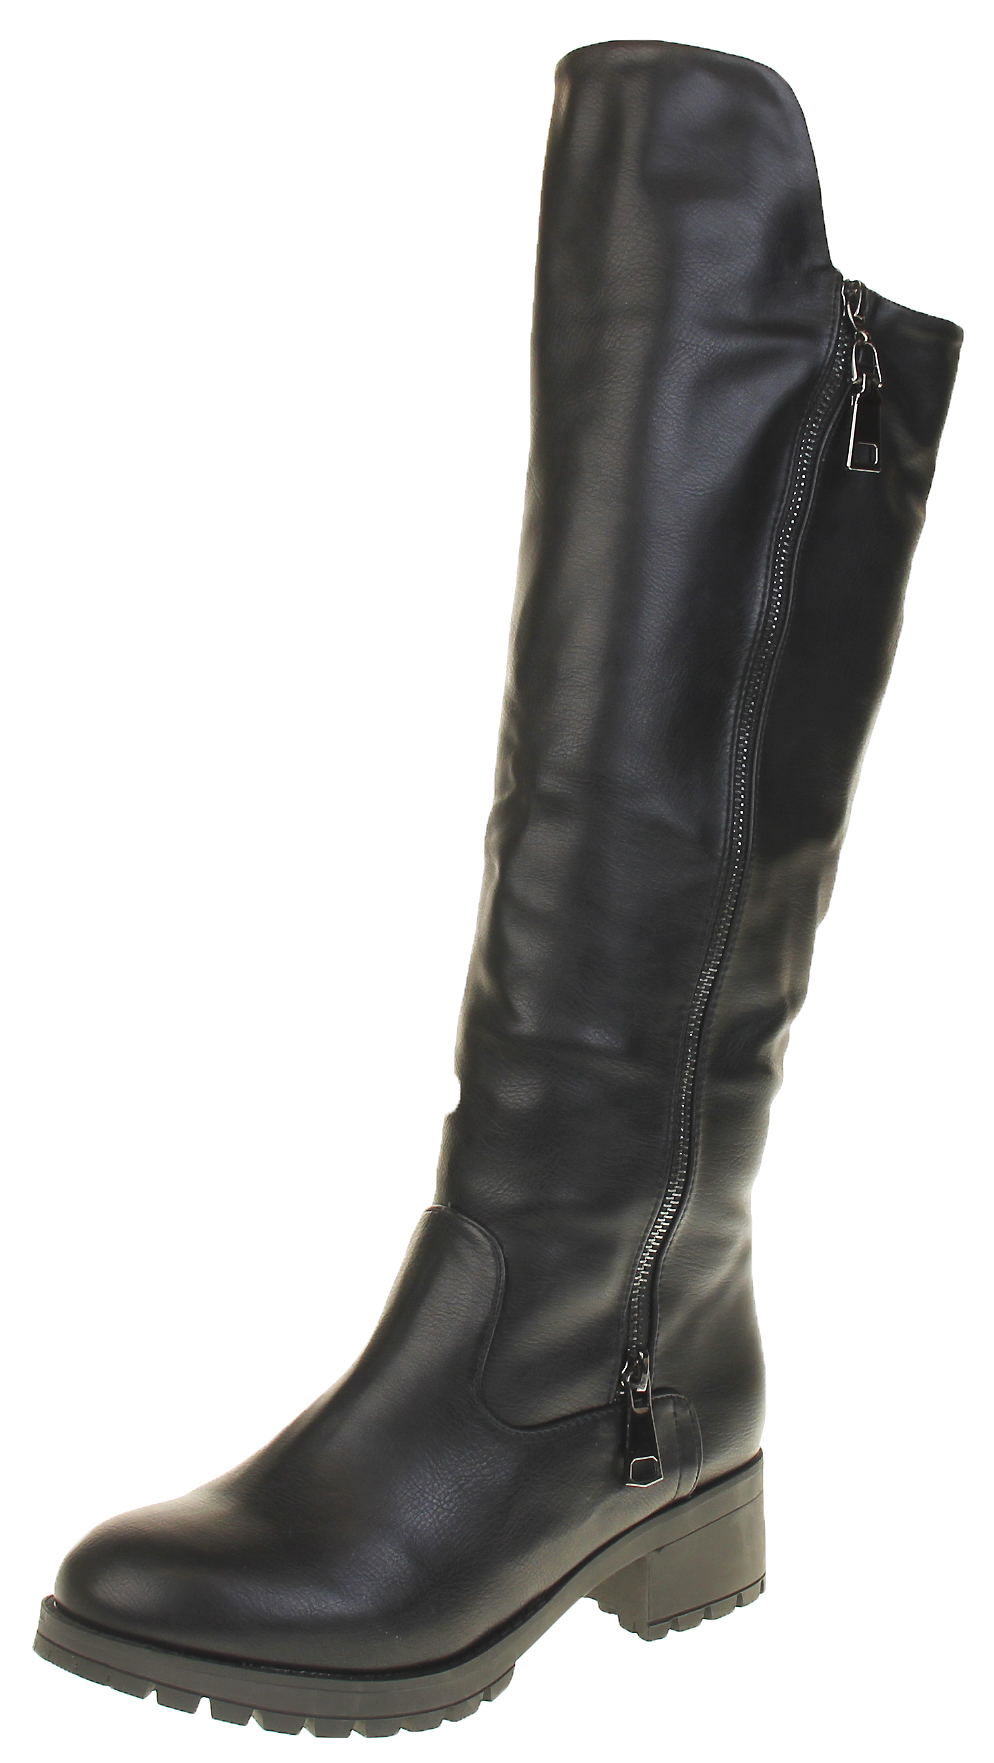 904b31b1410 Womens Ladies Black Betsy Faux Leather Faux Fur Lined Knee High Biker Boots